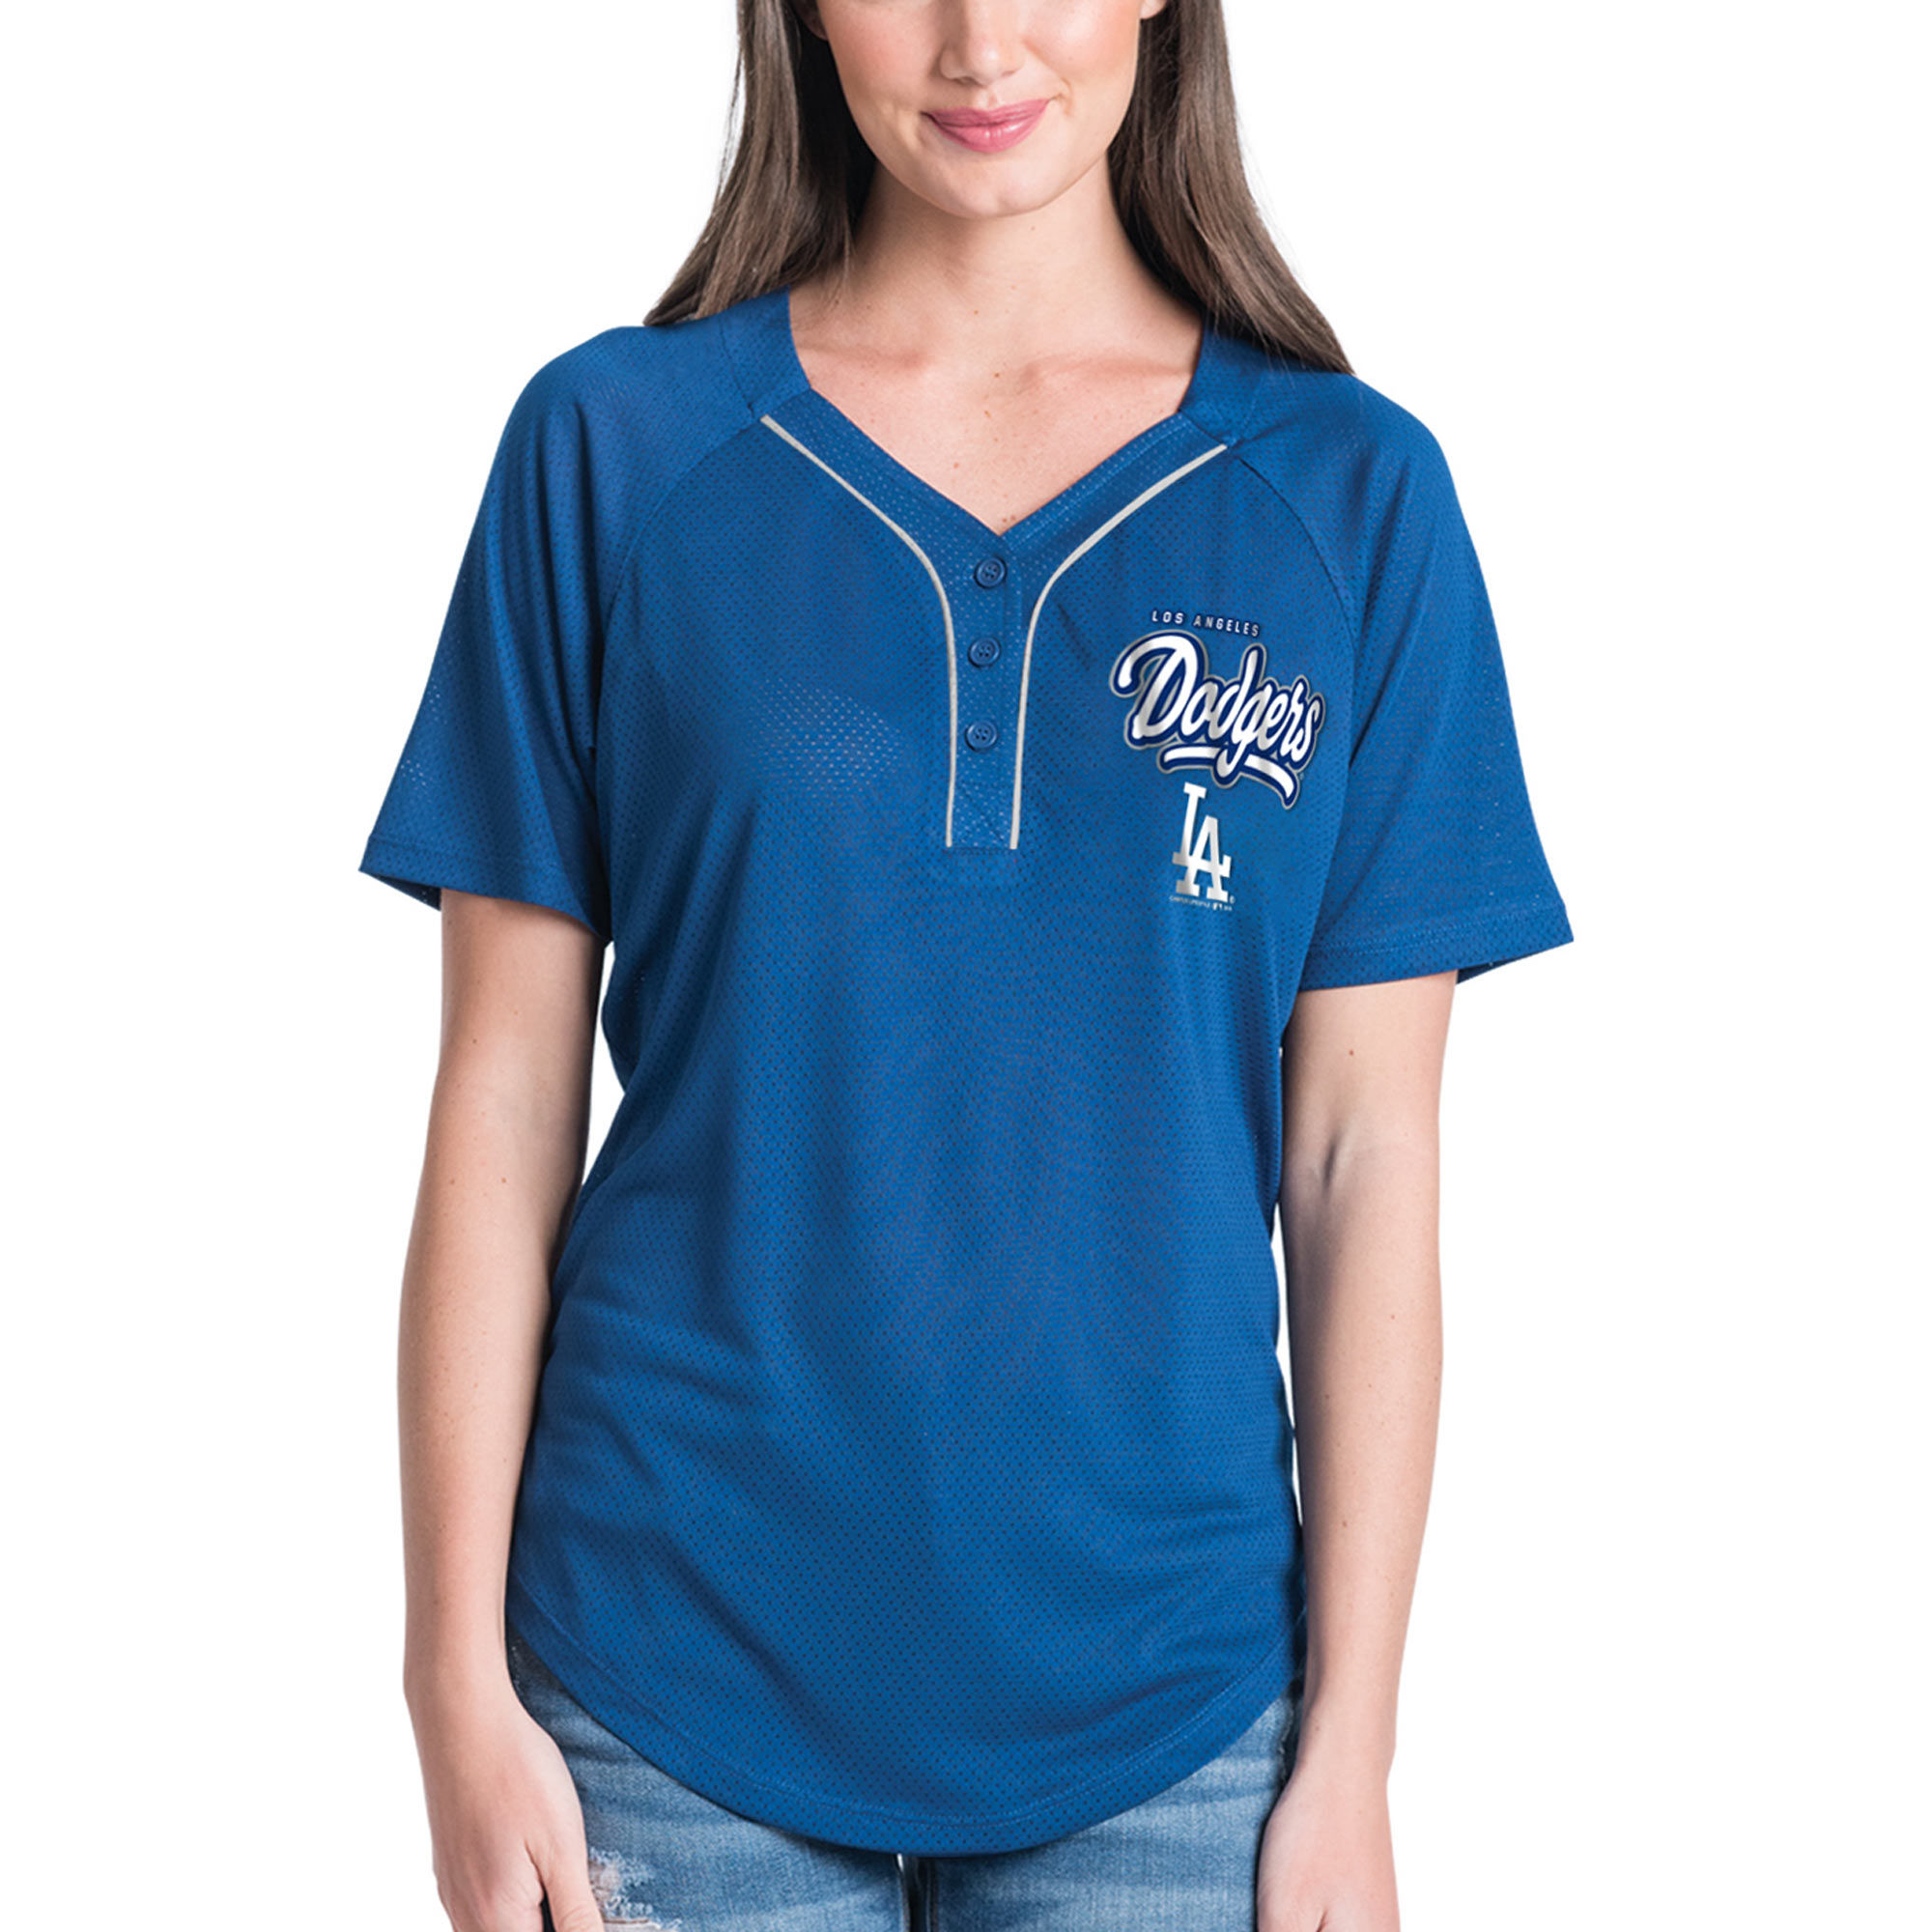 ... reduced product image womens new era royal los angeles dodgers henley  mesh jersey t shirt 21175 69af02e5294